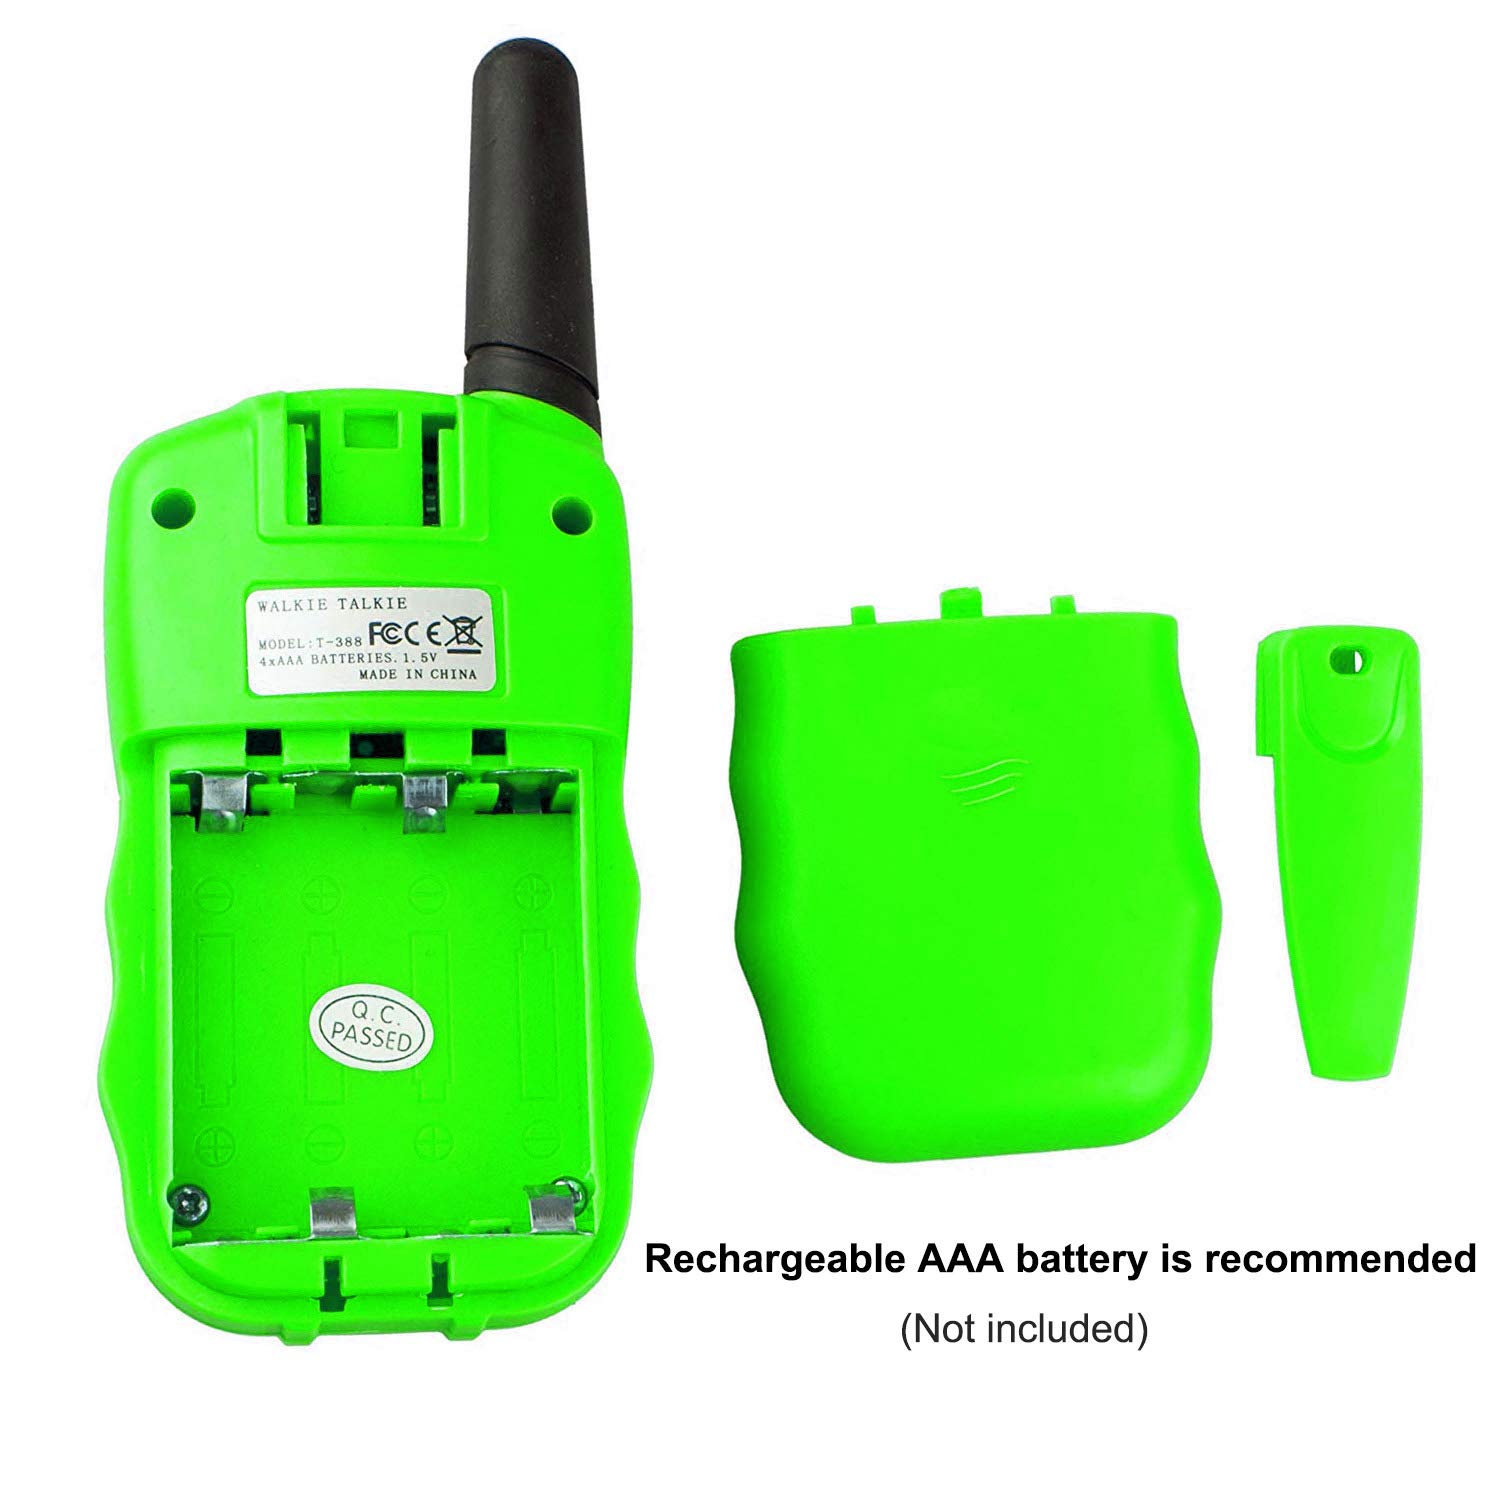 Qianghong T3 Kids Walkie Talkies 3-12 Year Old Children's Outdoor Toys Mini Two Way Radios UHF 462-467 MHz Frequency 22 Channels - 1 Pair Green by Qianghong (Image #5)